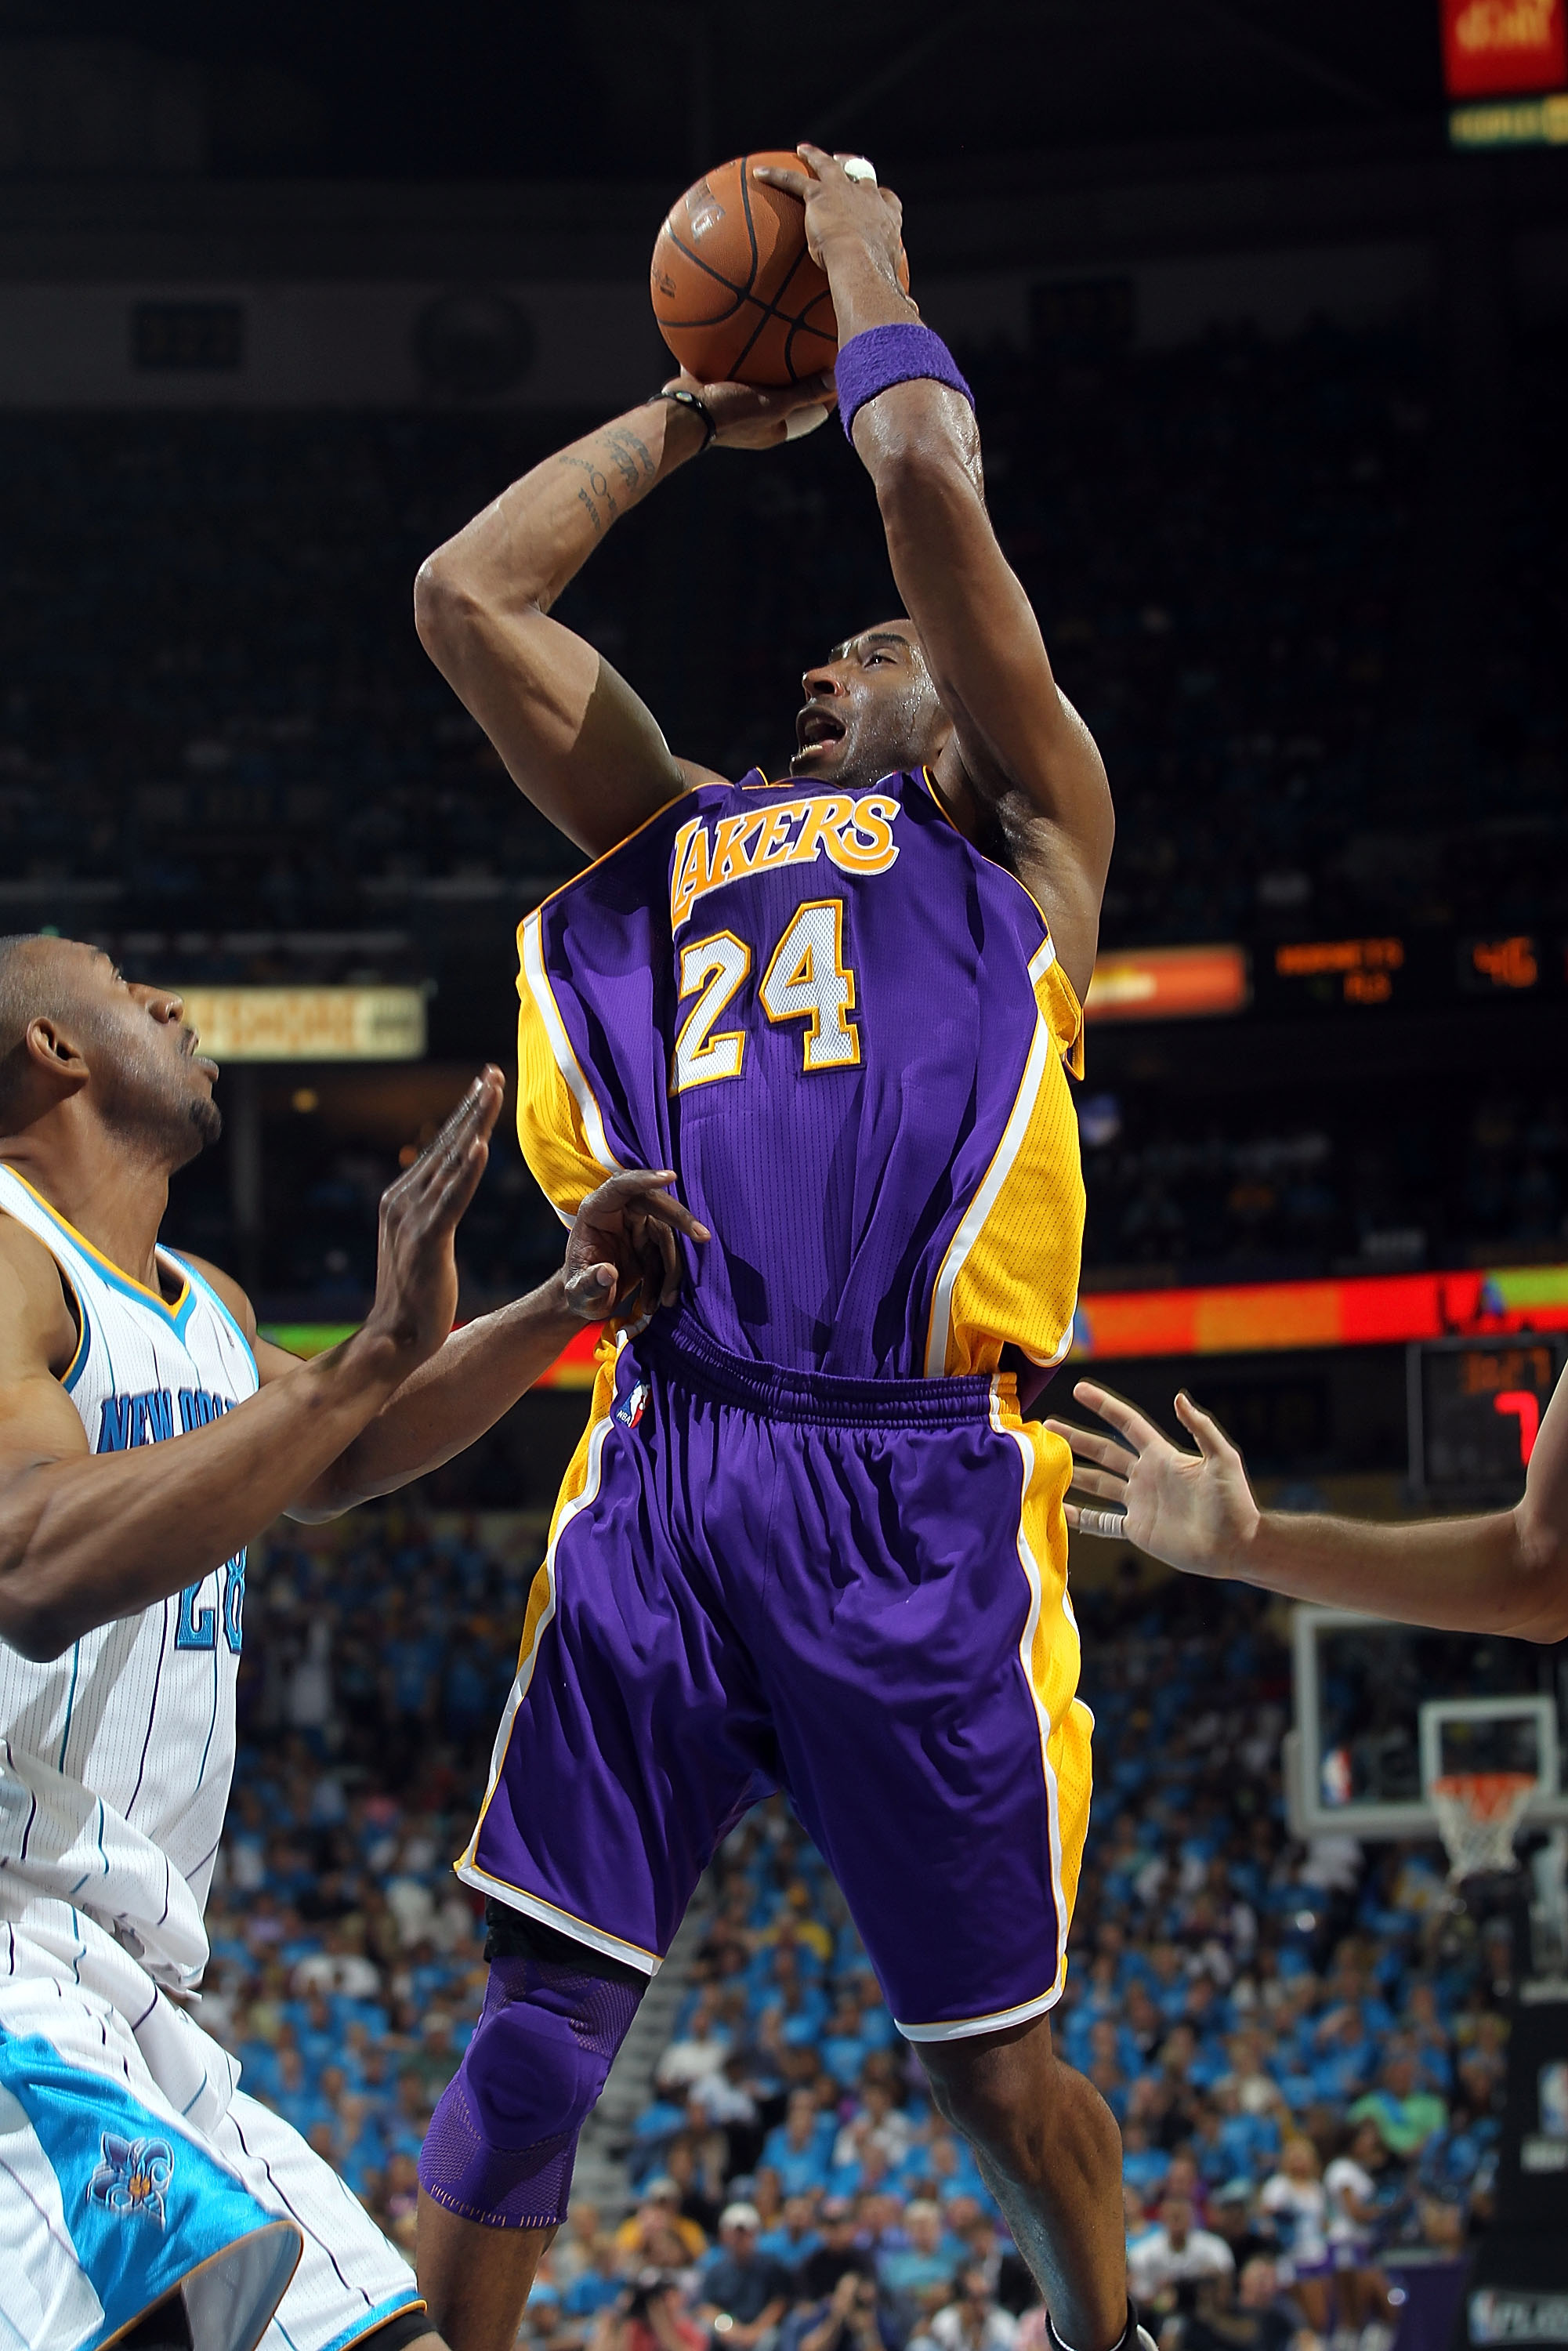 NEW ORLEANS, LA - APRIL 28:  Guard Kobe Bryant #24 of the Los Angeles Lakers takes a shot against D.J. Mbenga #28 of the New Orleans Hornets in Game Six of the Western Conference Quarterfinals in the 2011 NBA Playoffs on April 28, 2011 at New Orleans Aren